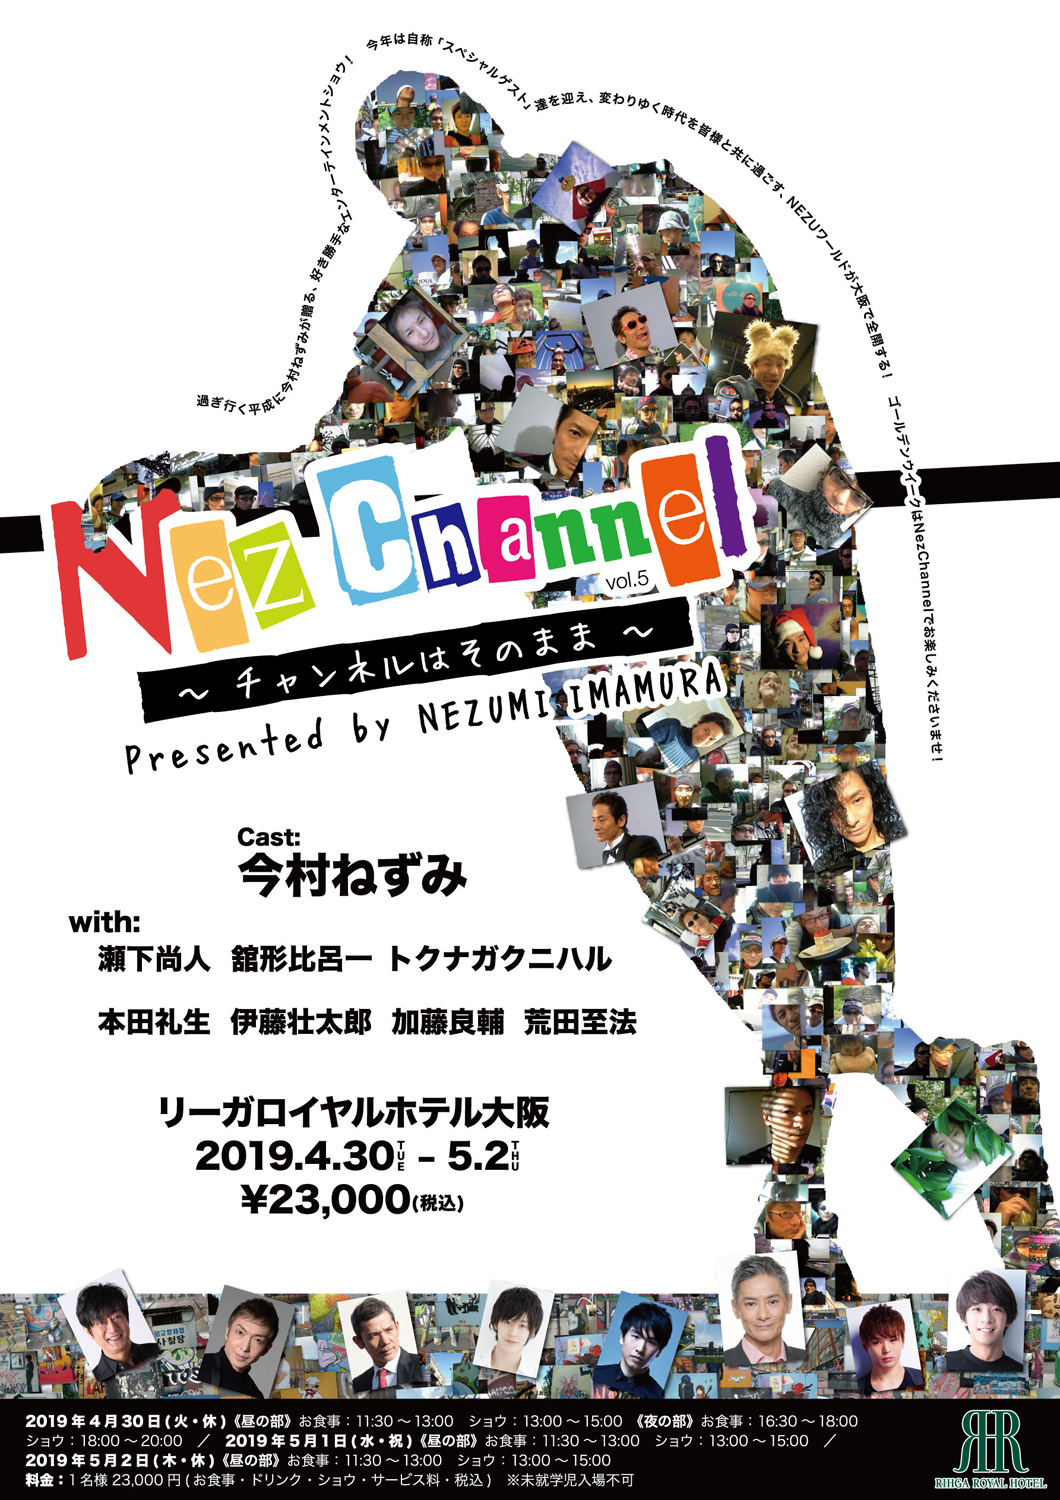 Nez Channel vol.5